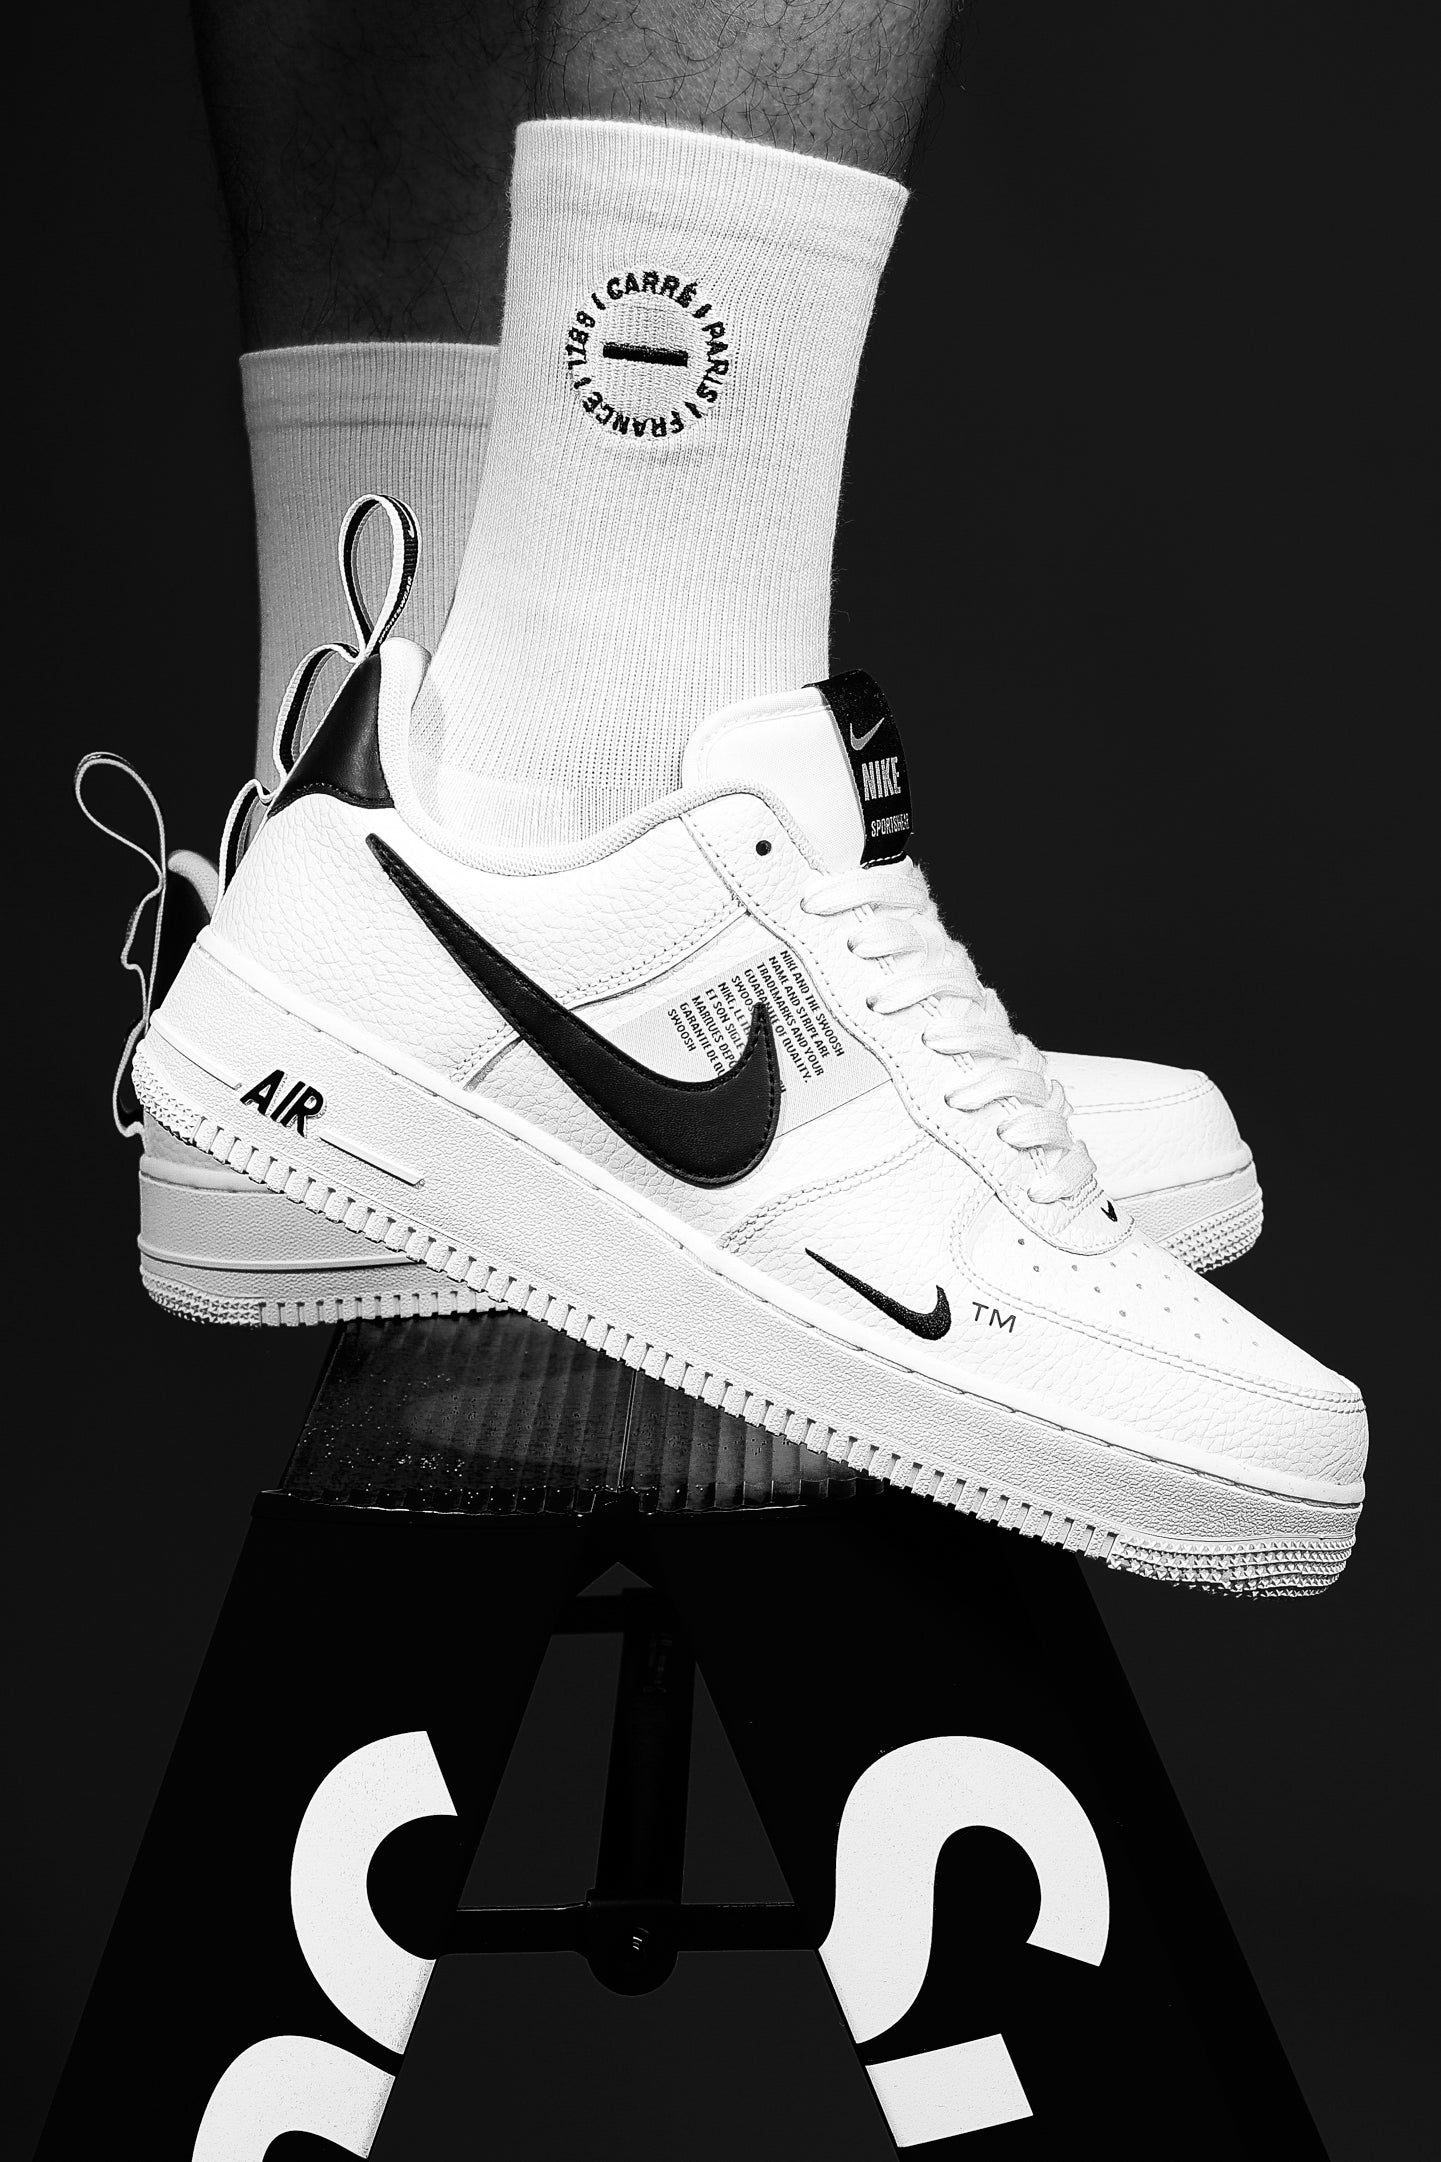 Nike Air Force 1 '07 LV8 Utility White U.K 8.5 U.S Depop